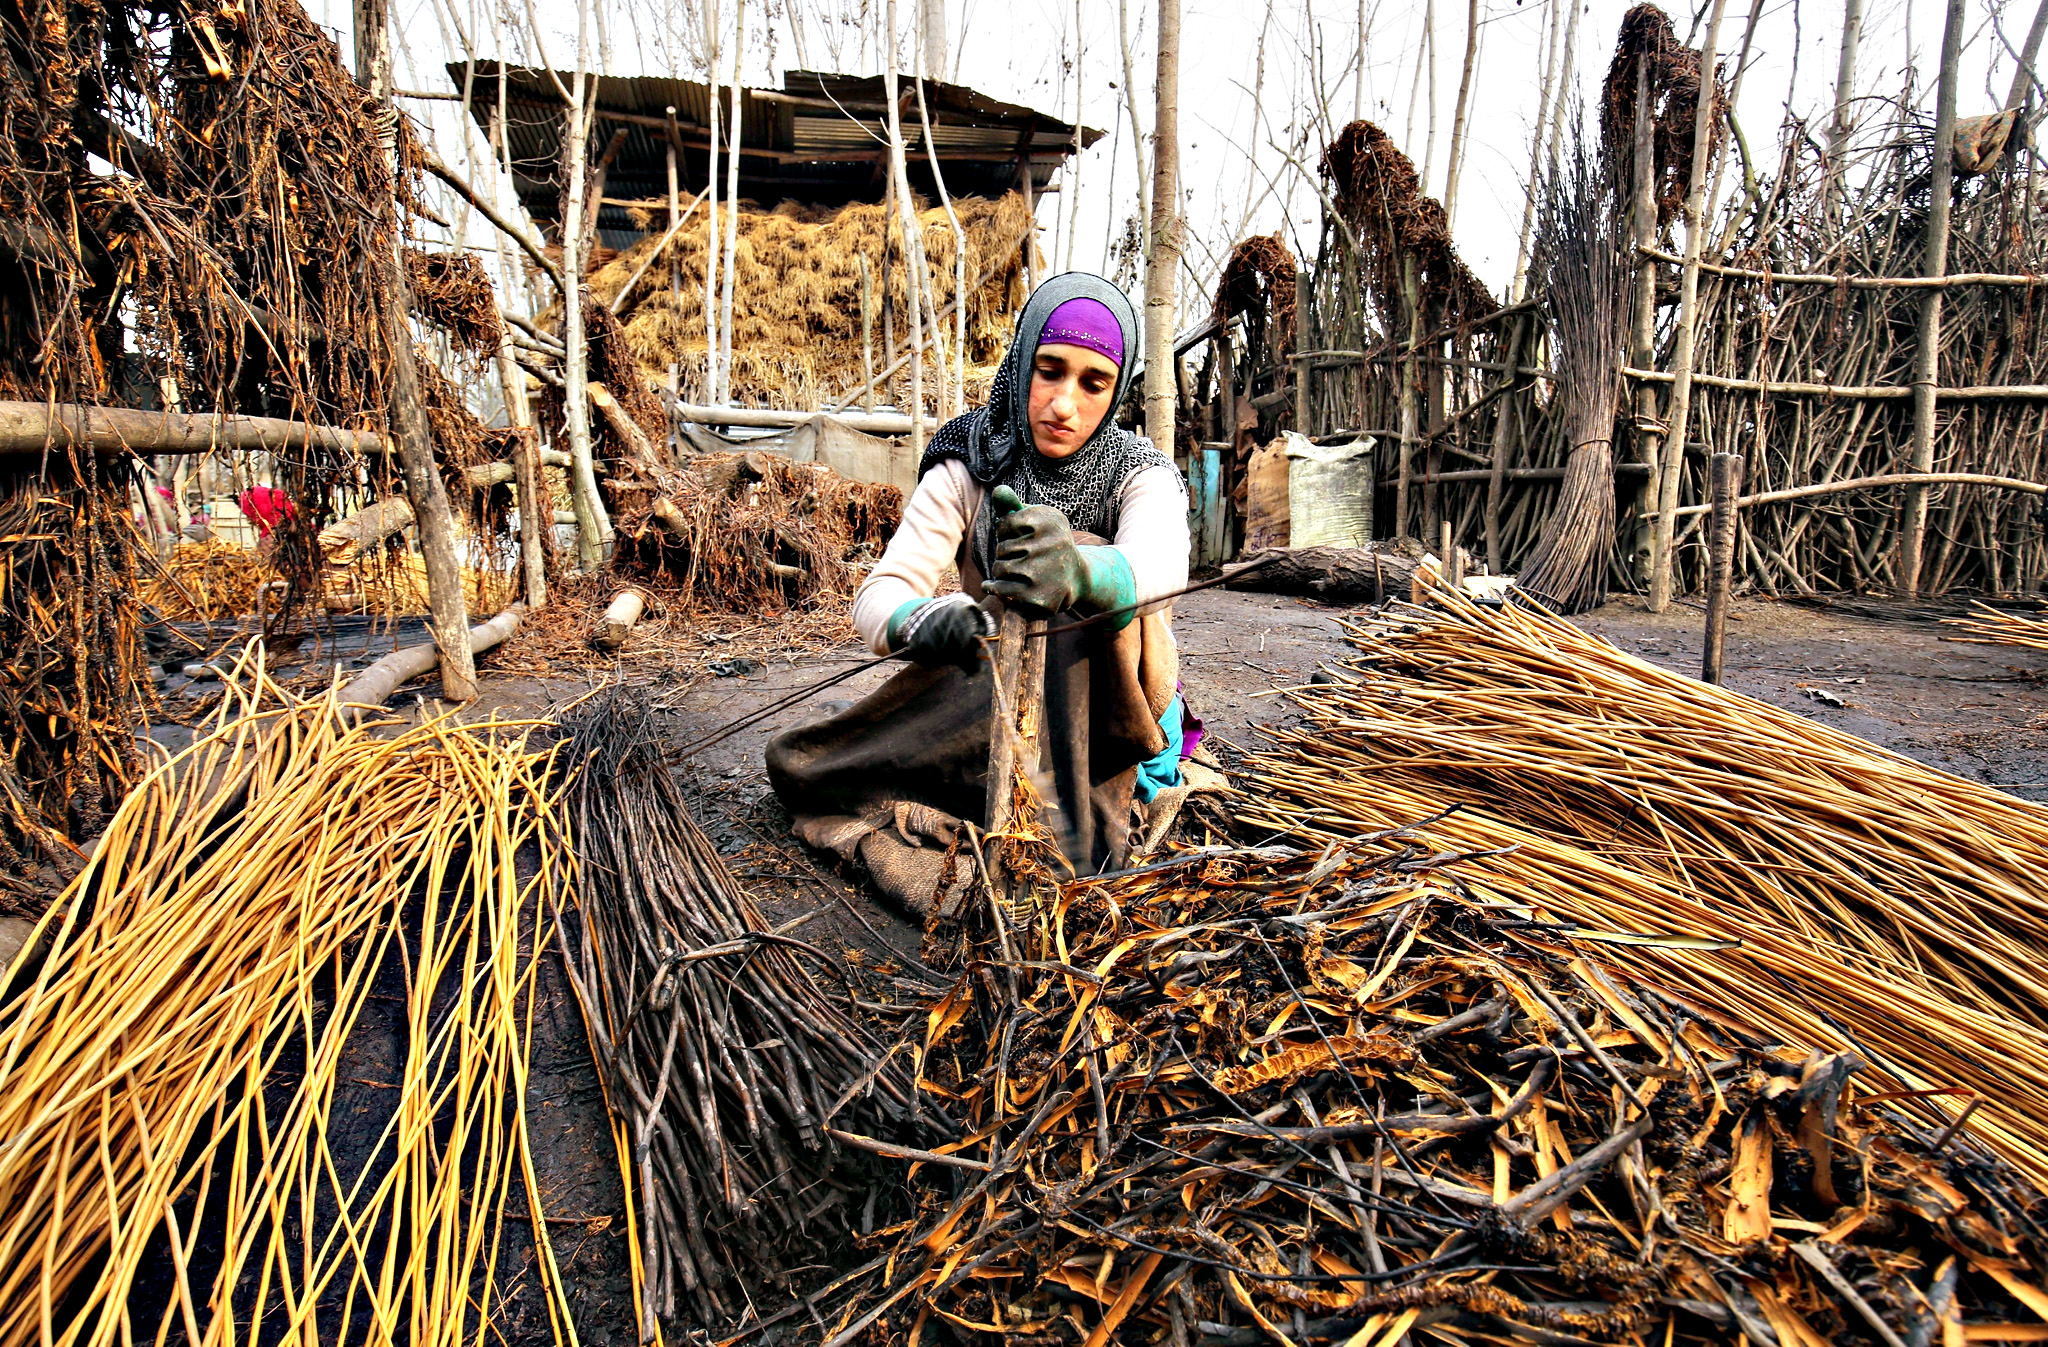 A Kashmiri Muslim woman peels off the bark of wicker sticks on the outskirts of Srinagar, the summer capital of Indian Kashmir, 22 December 2015. Wicker sticks are used to make Kangir, the traditional Kashmiri firepot, which is used to keep warm during cold winters. Hundreds of families in Kashmir depend on the trade with Kangir, with Kangir artisans of different regions making distinct and fashionable firepots.